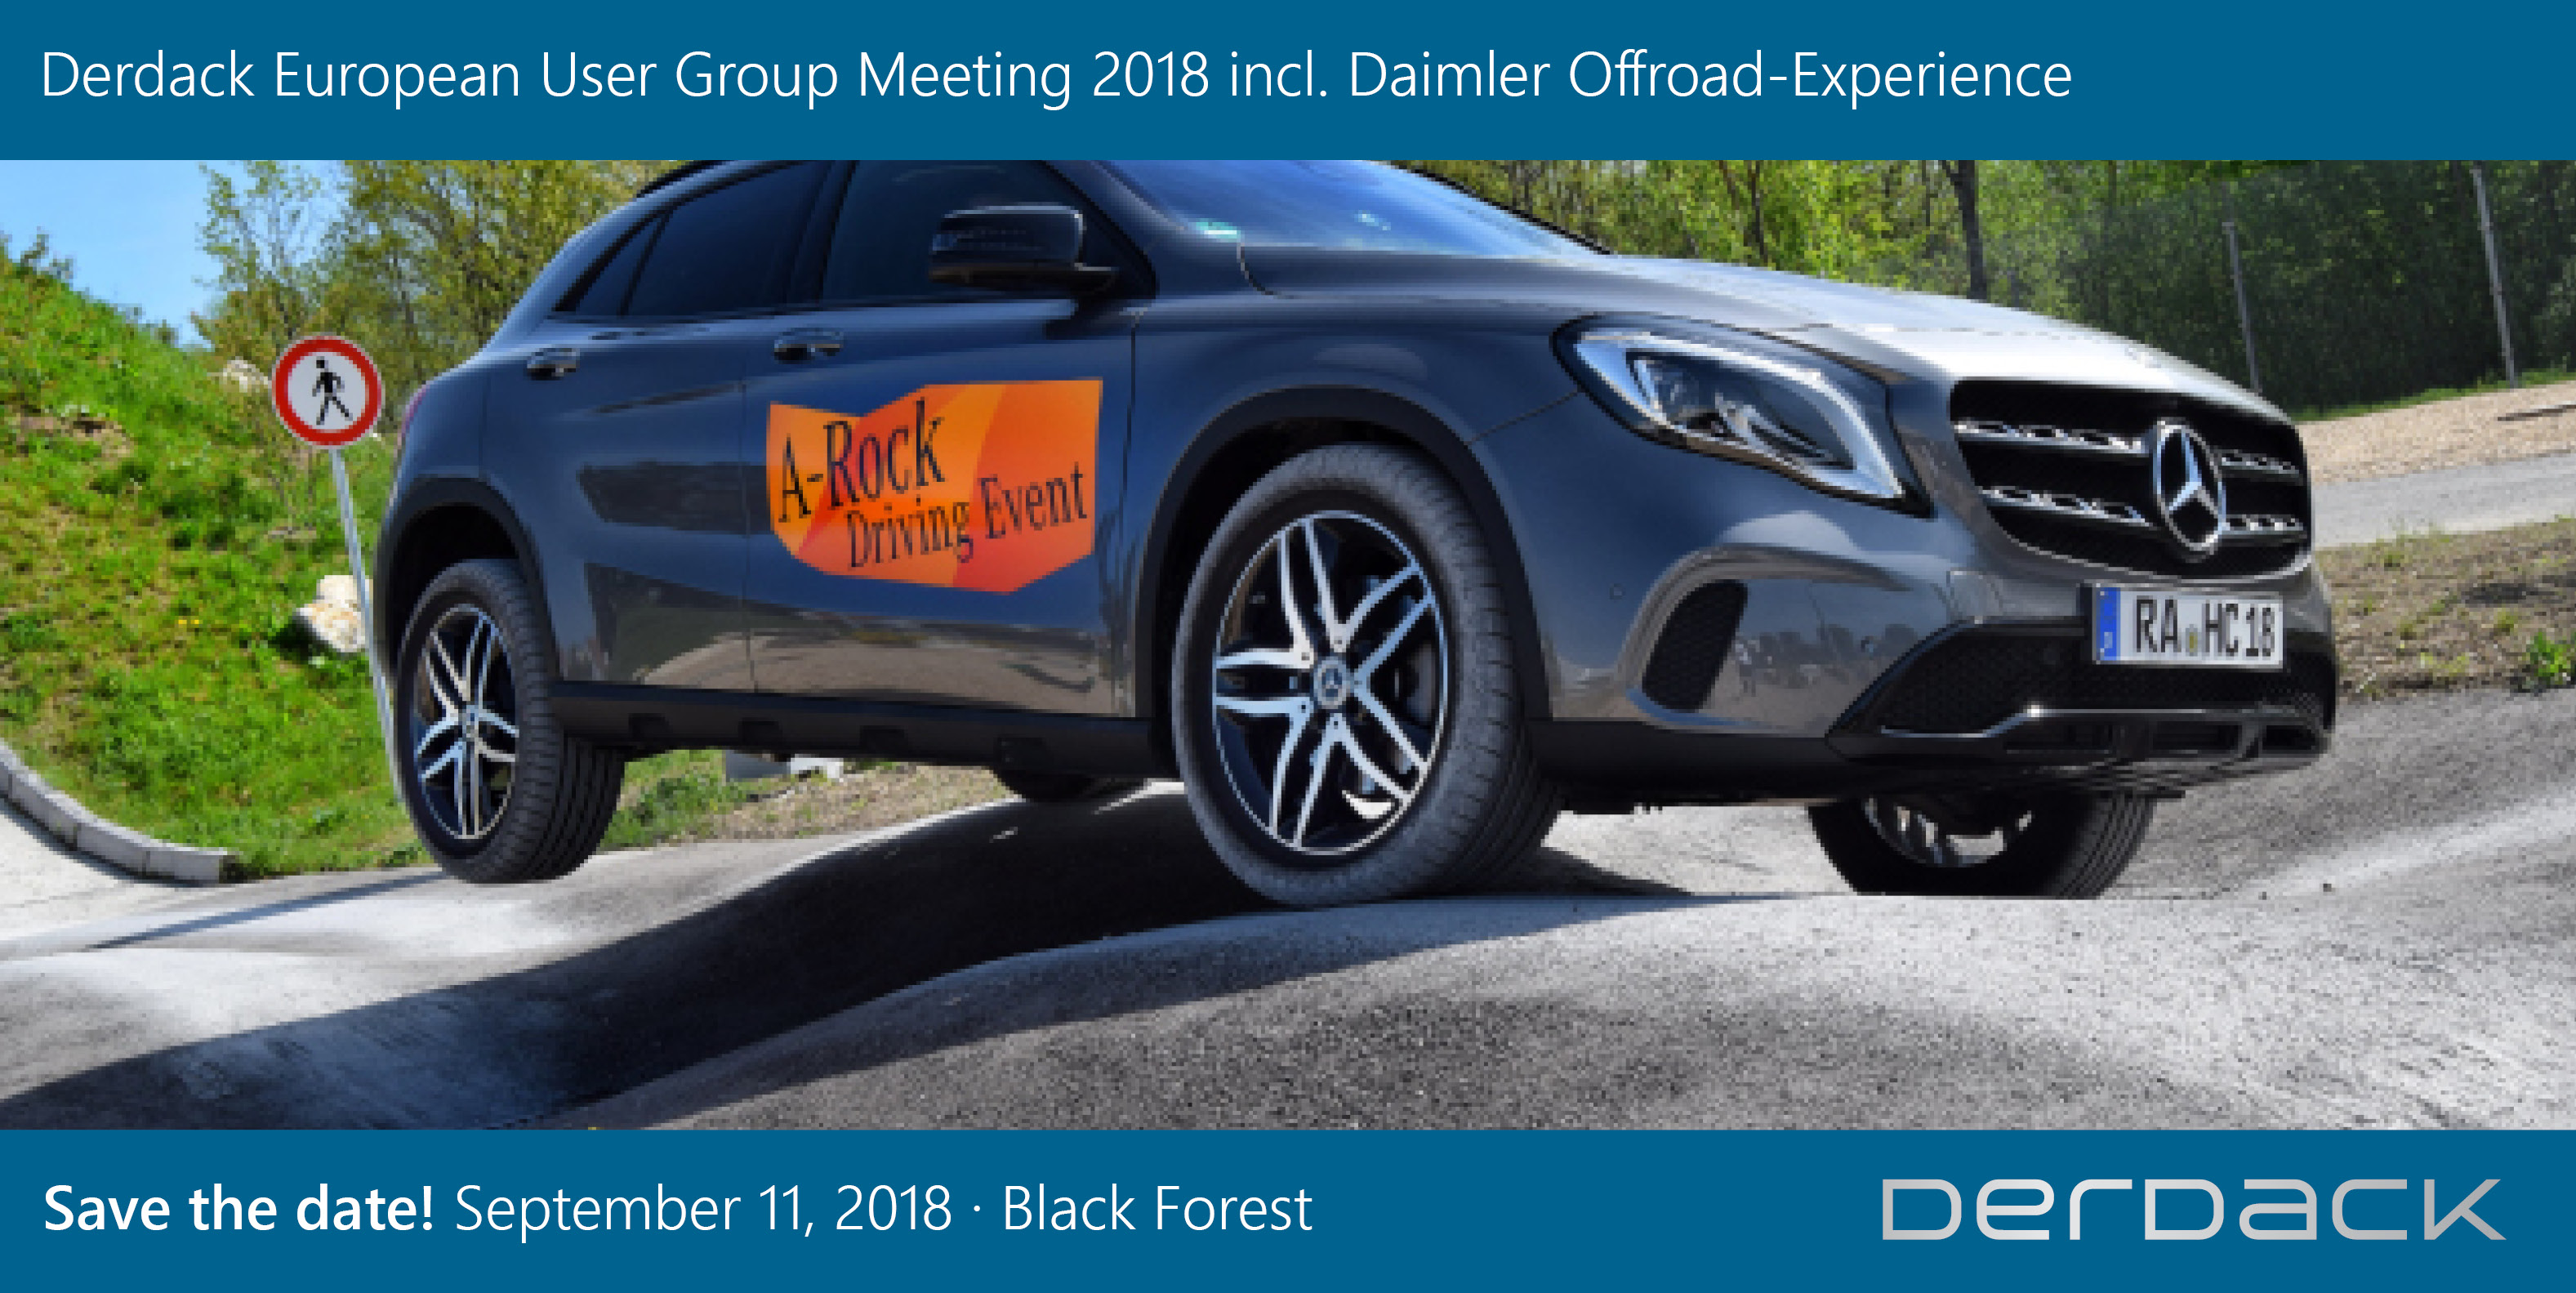 Derdack European User Group Meeting 2018 (DEUGM)